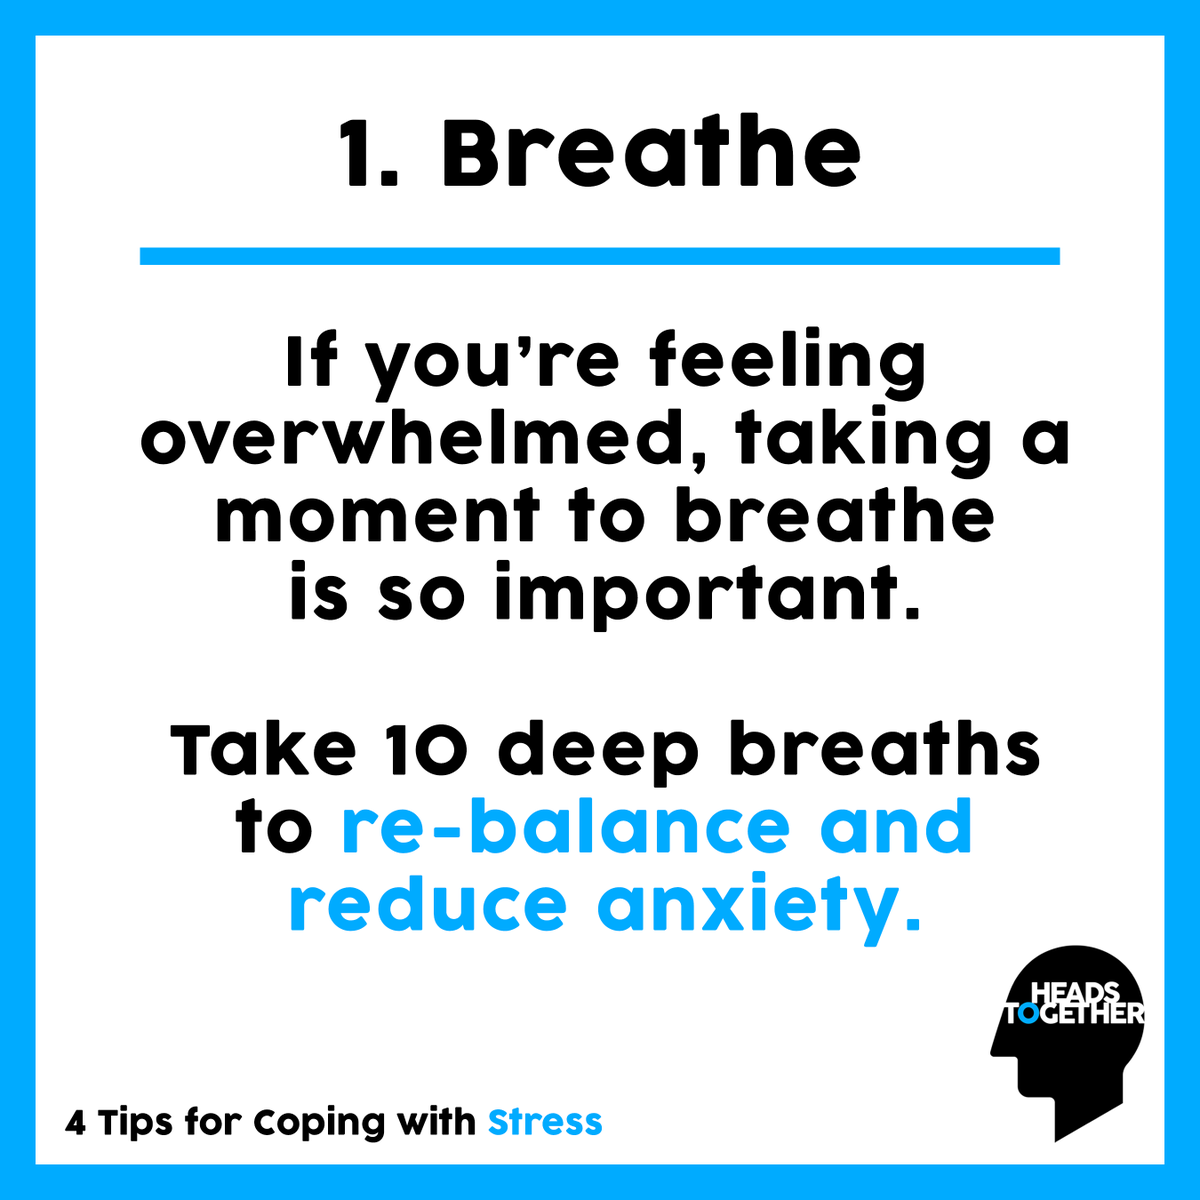 For many of us, our lives have been turned upside down in recent weeks, which can cause feelings of increased anxiety, worry, and stress. Here are our top tips to help manage your stress levels. #HeadsTogether